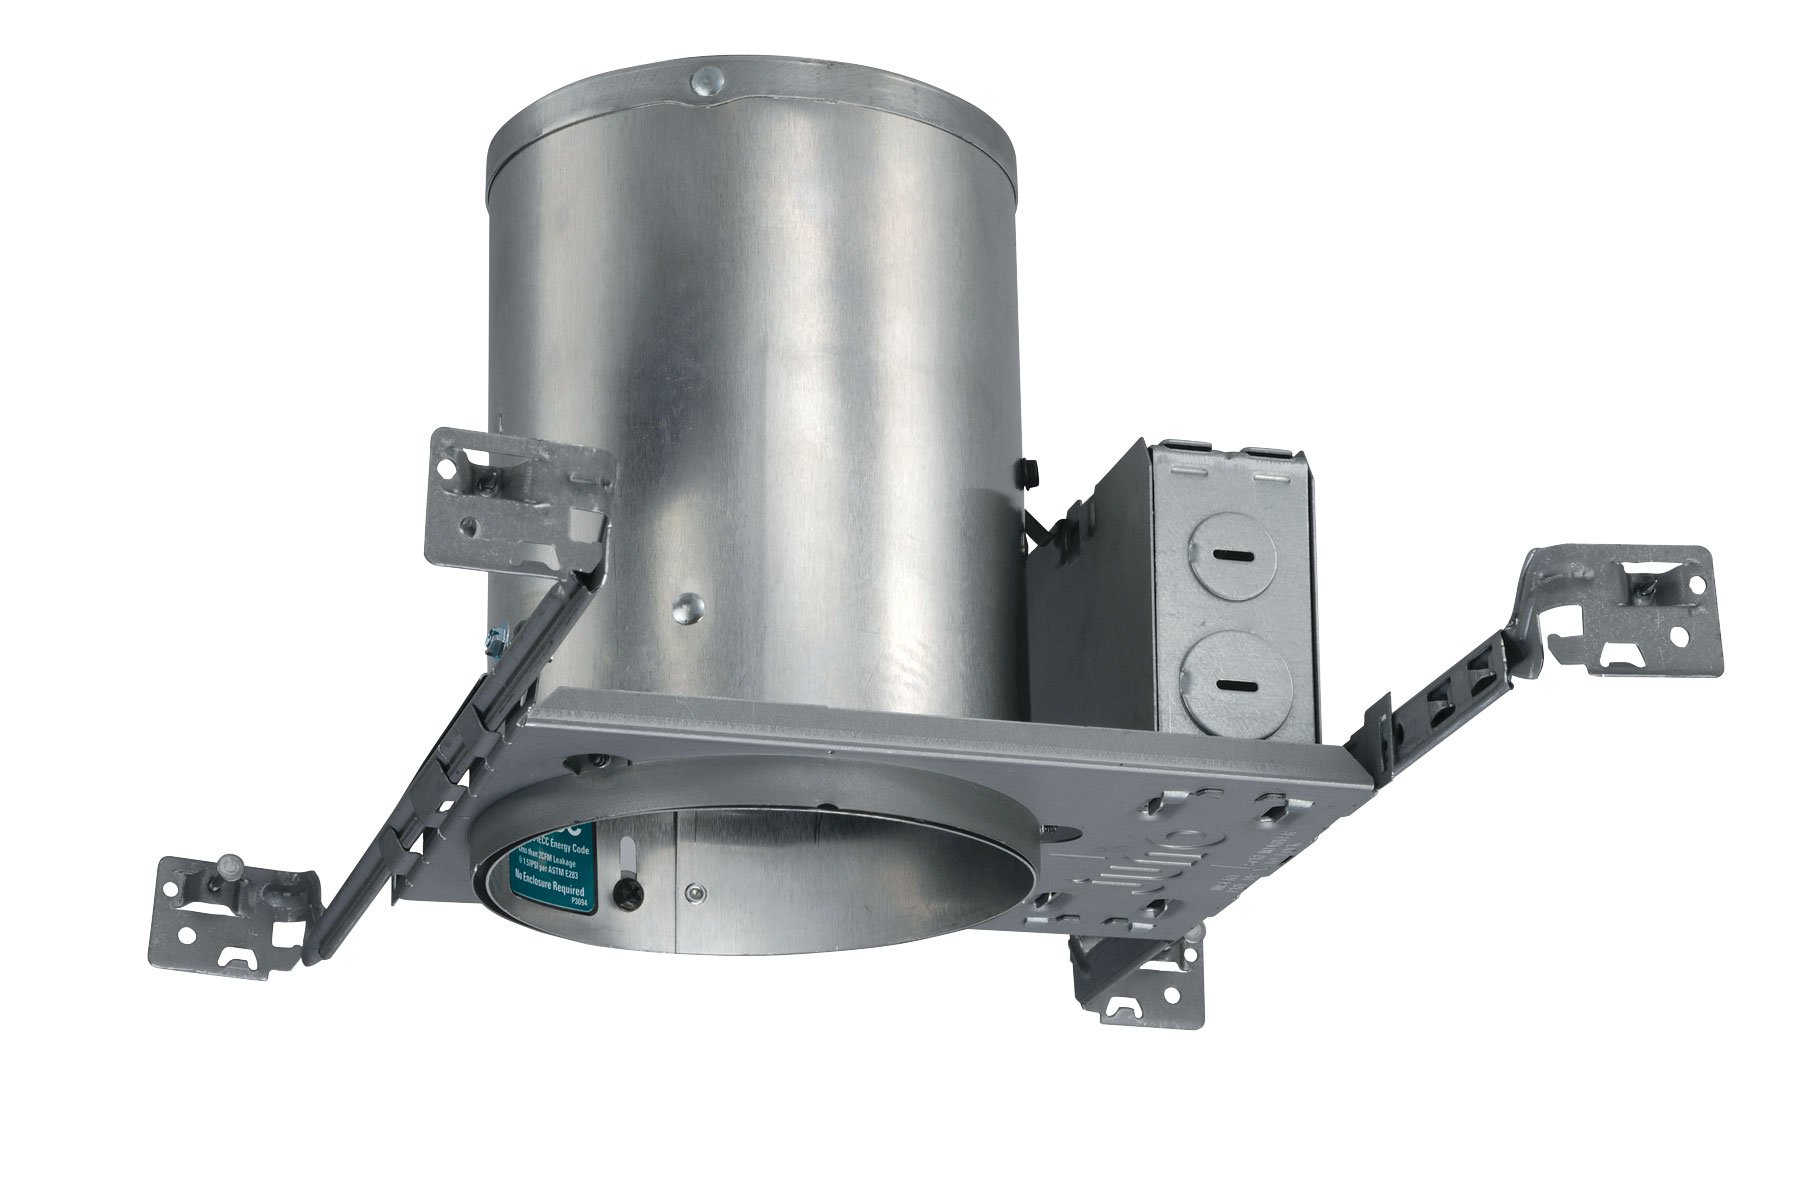 Juno Lighting IC20W 5-Inch IC Rated New Construction Universal Housing with Quickwire